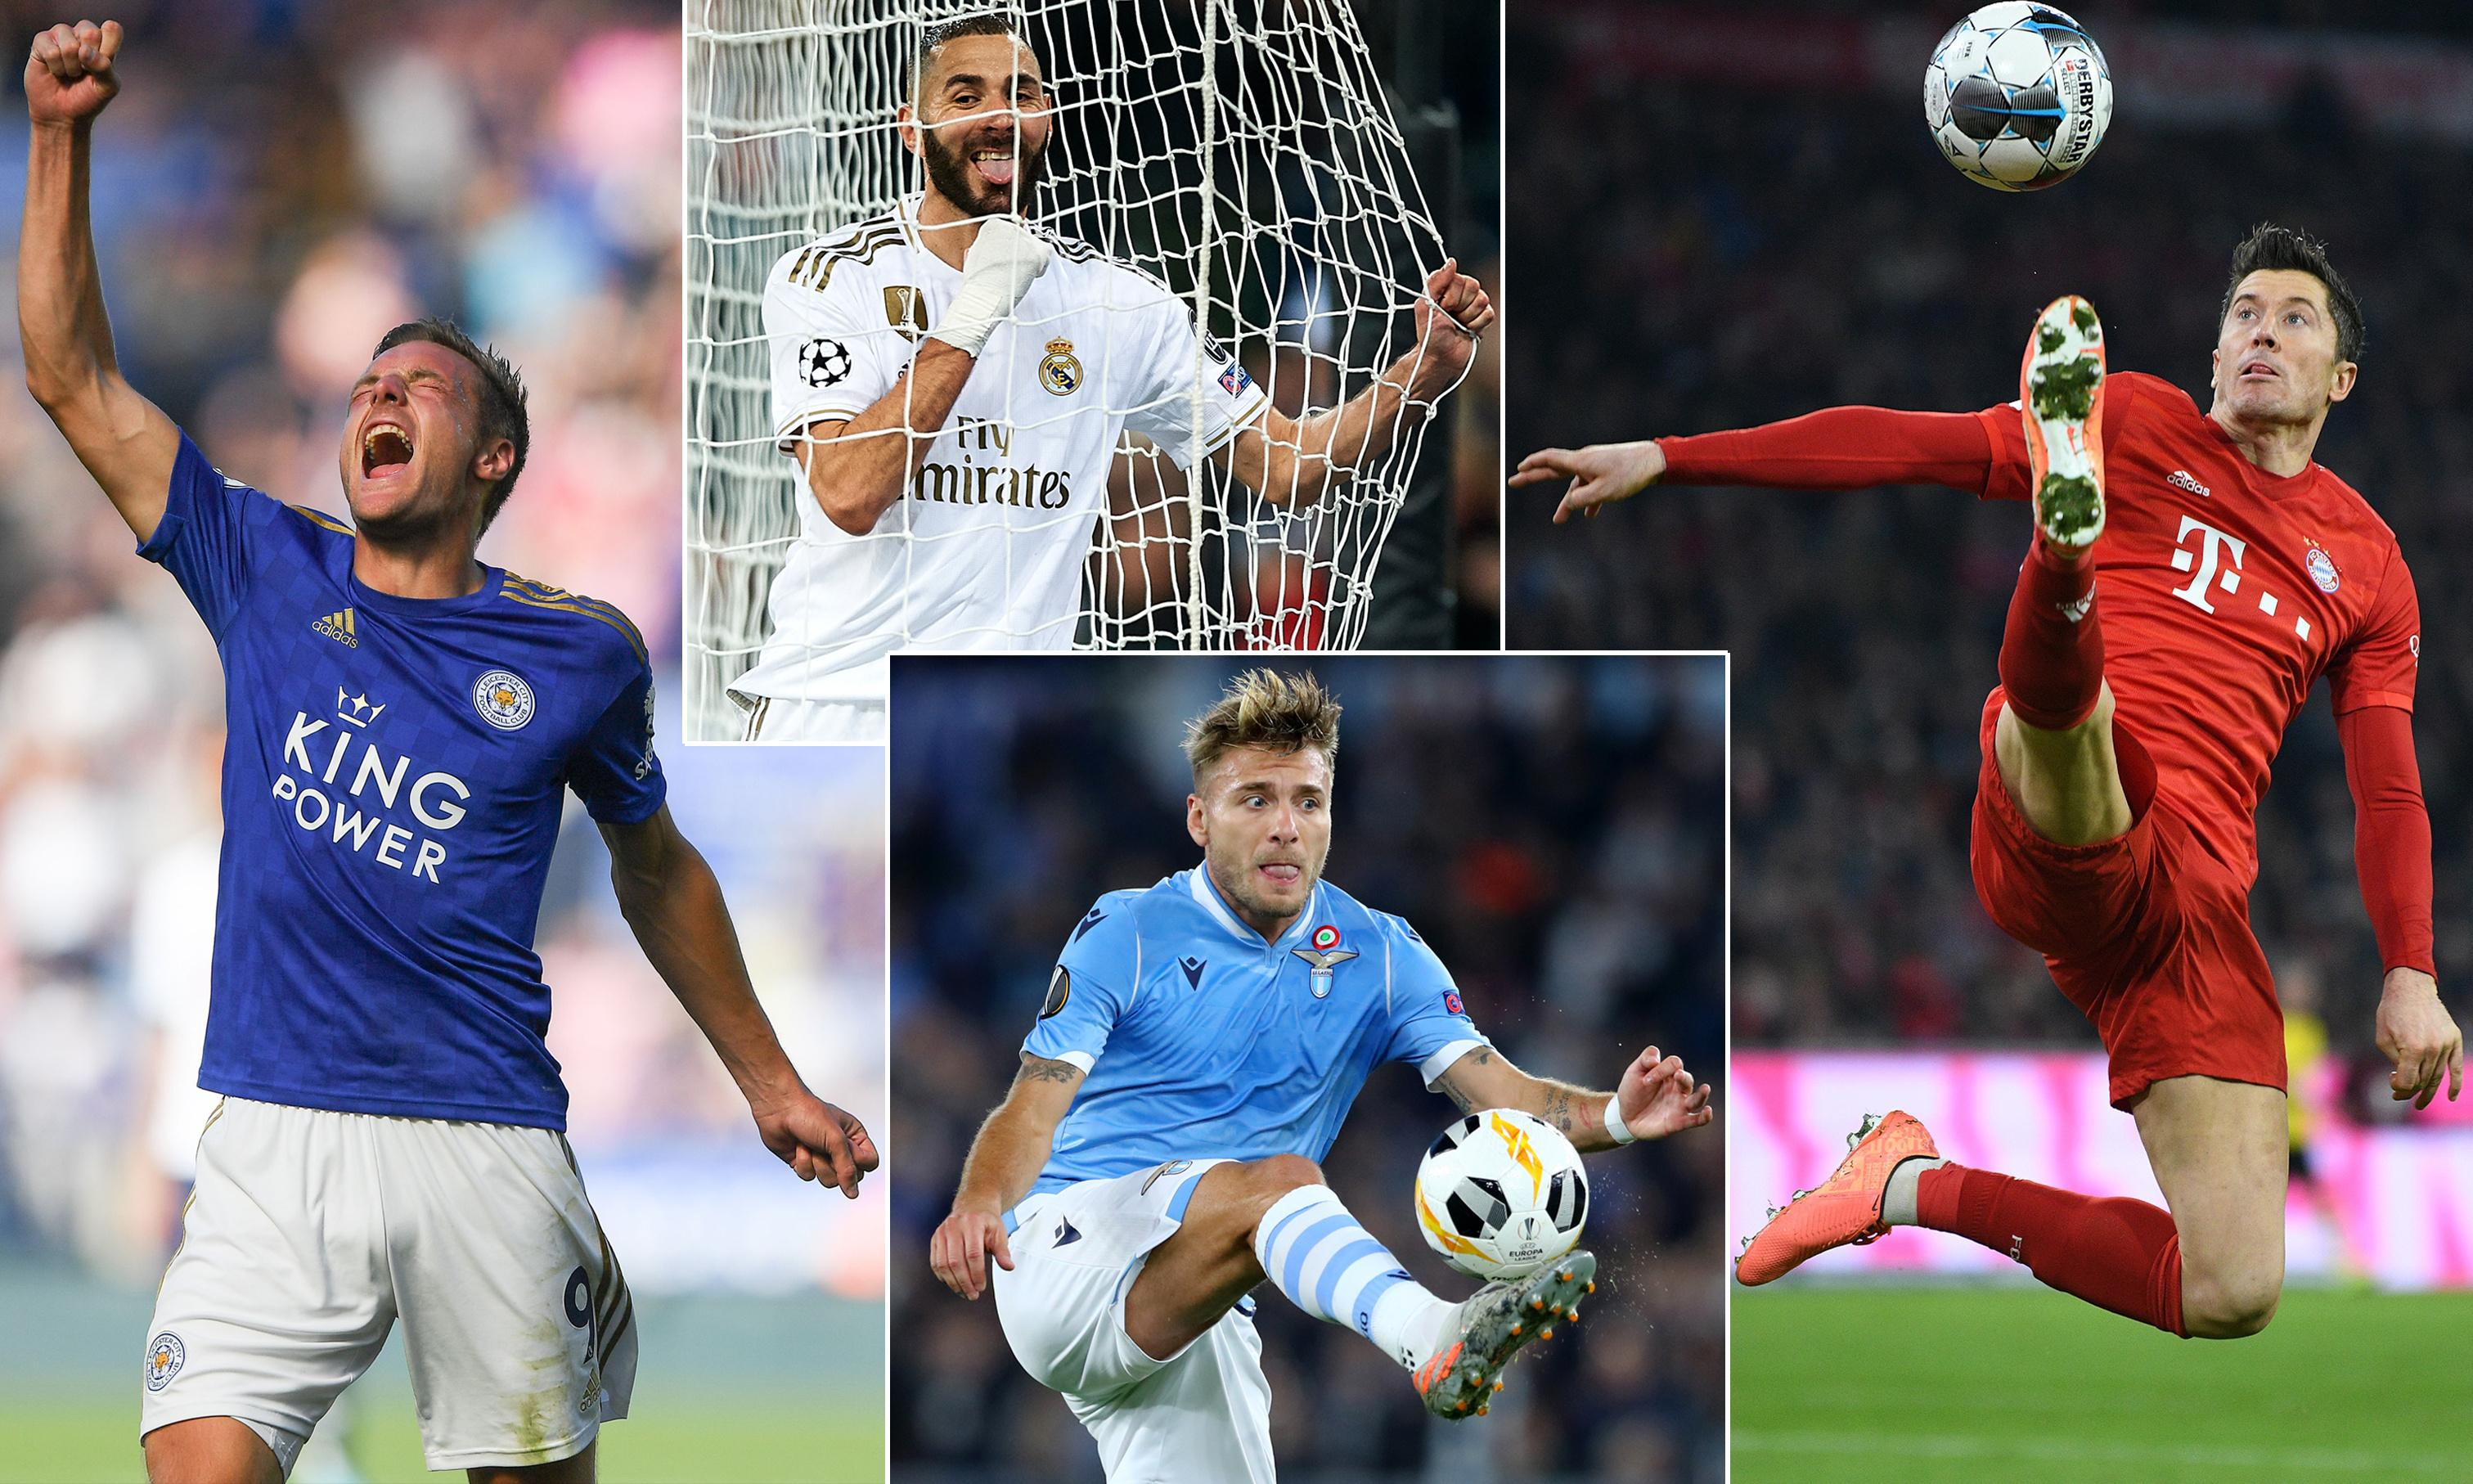 From Vardy to Lewandowski, vintage traditional No 9s are thriving again